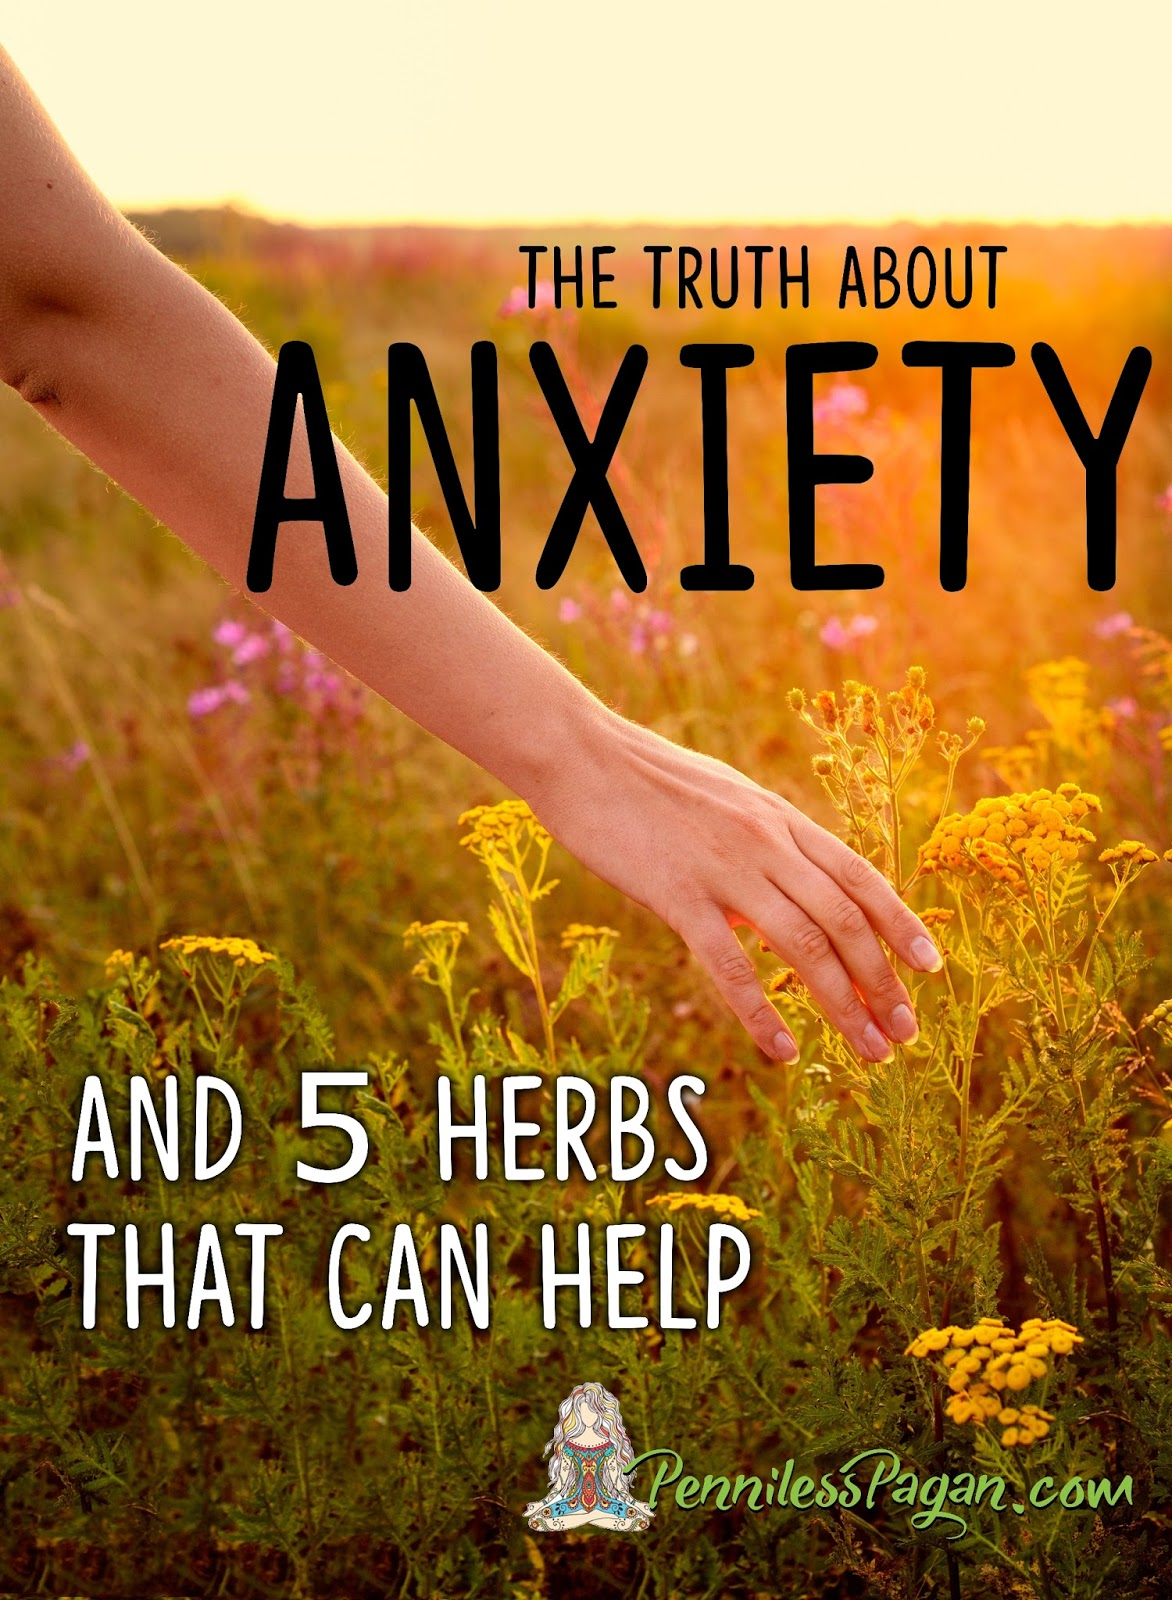 penniless pagan: the truth about anxiety and herbs to help